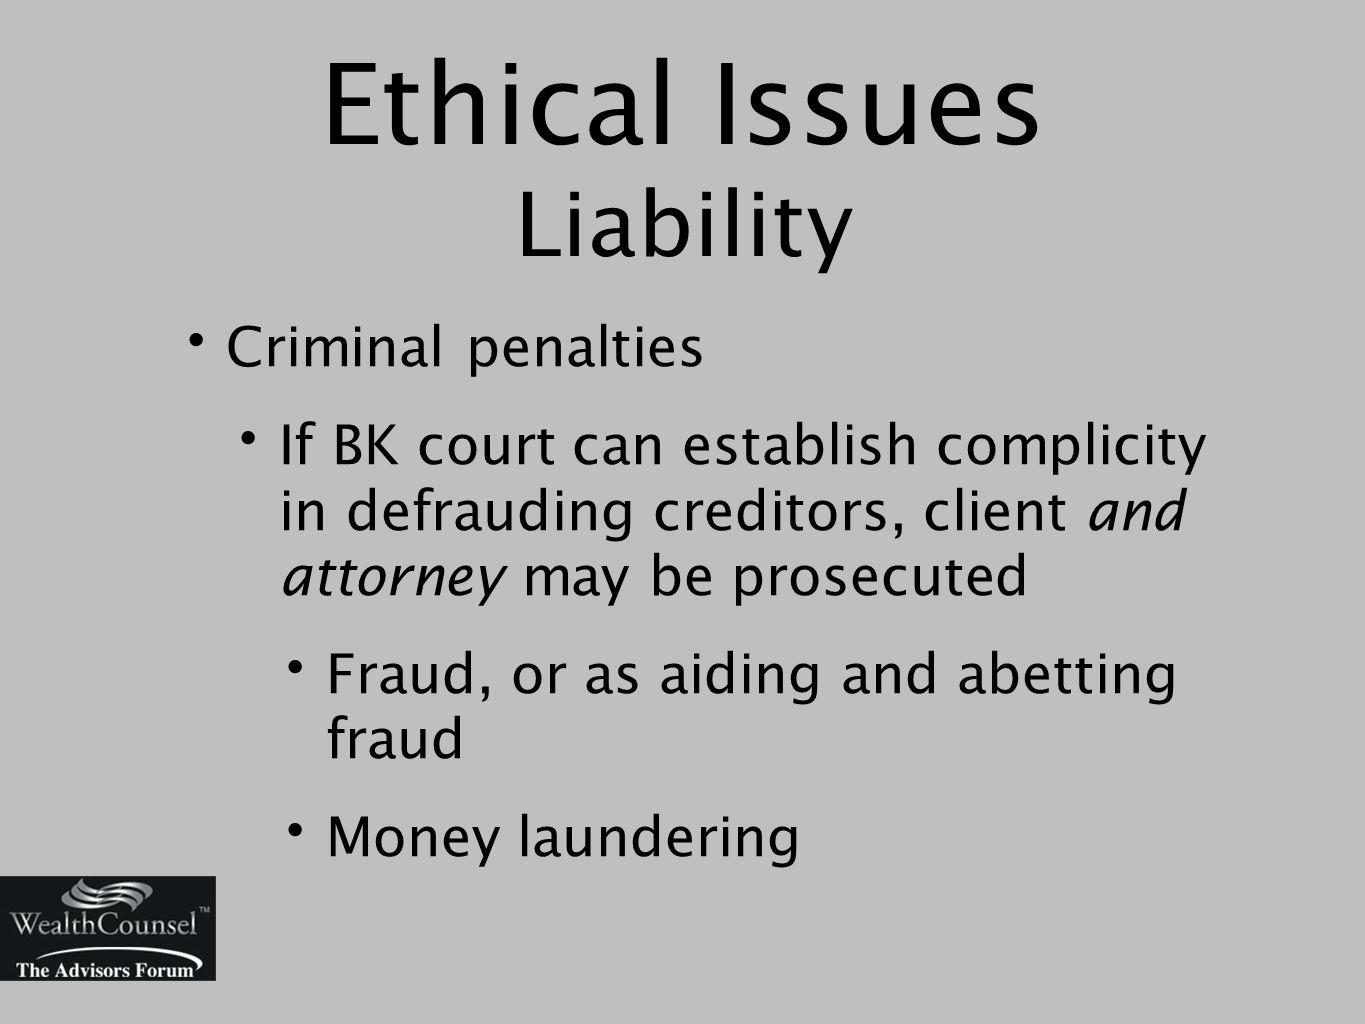 Ethical Issues Liability Criminal penalties If BK court can establish complicity in defrauding creditors, client and attorney may be prosecuted Fraud, or as aiding and abetting fraud Money laundering